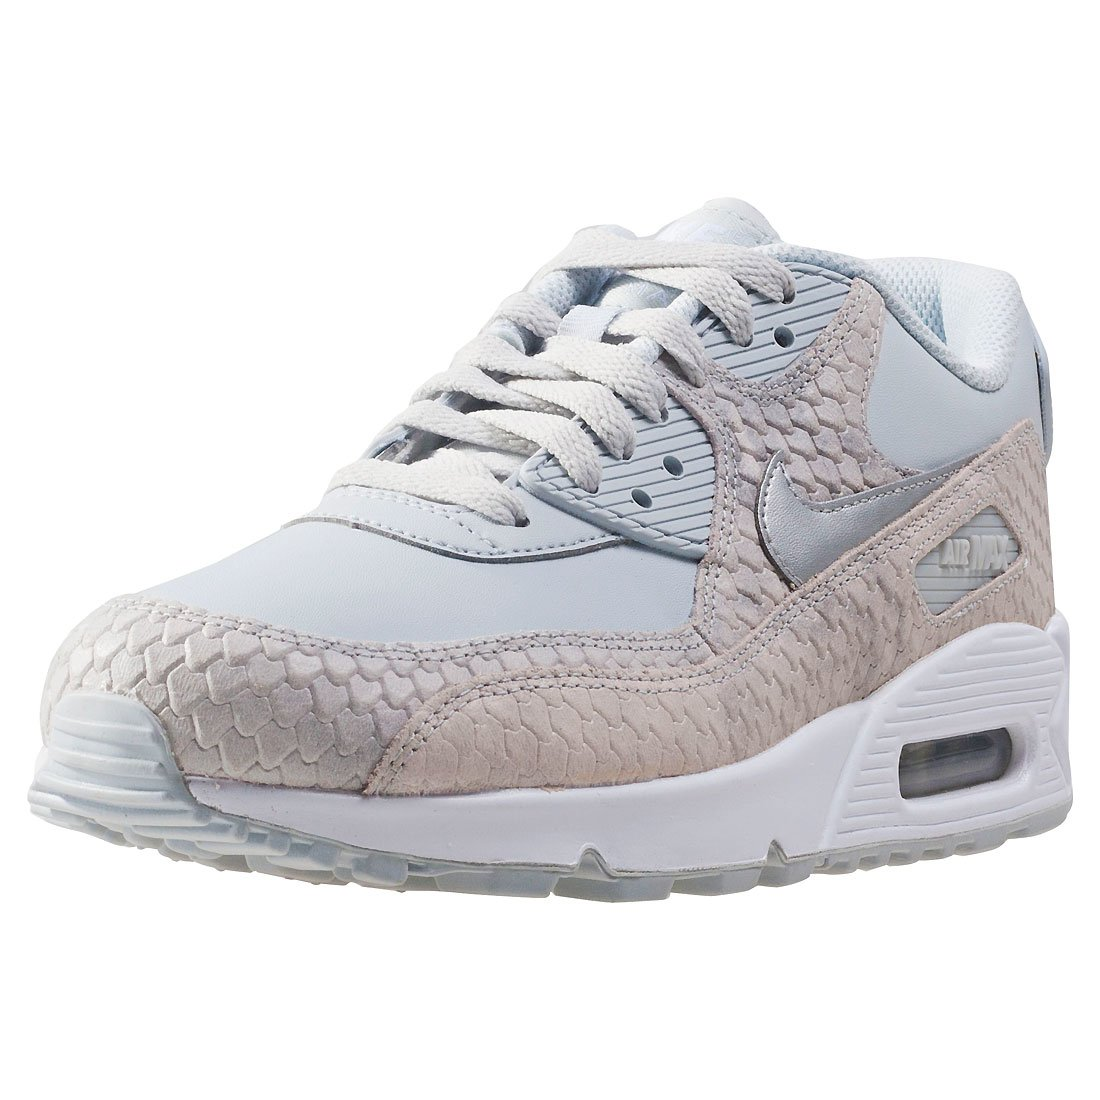 6b153e426f5a Nike Air Max 90 Premium Womens Trainers  Amazon.co.uk  Shoes   Bags